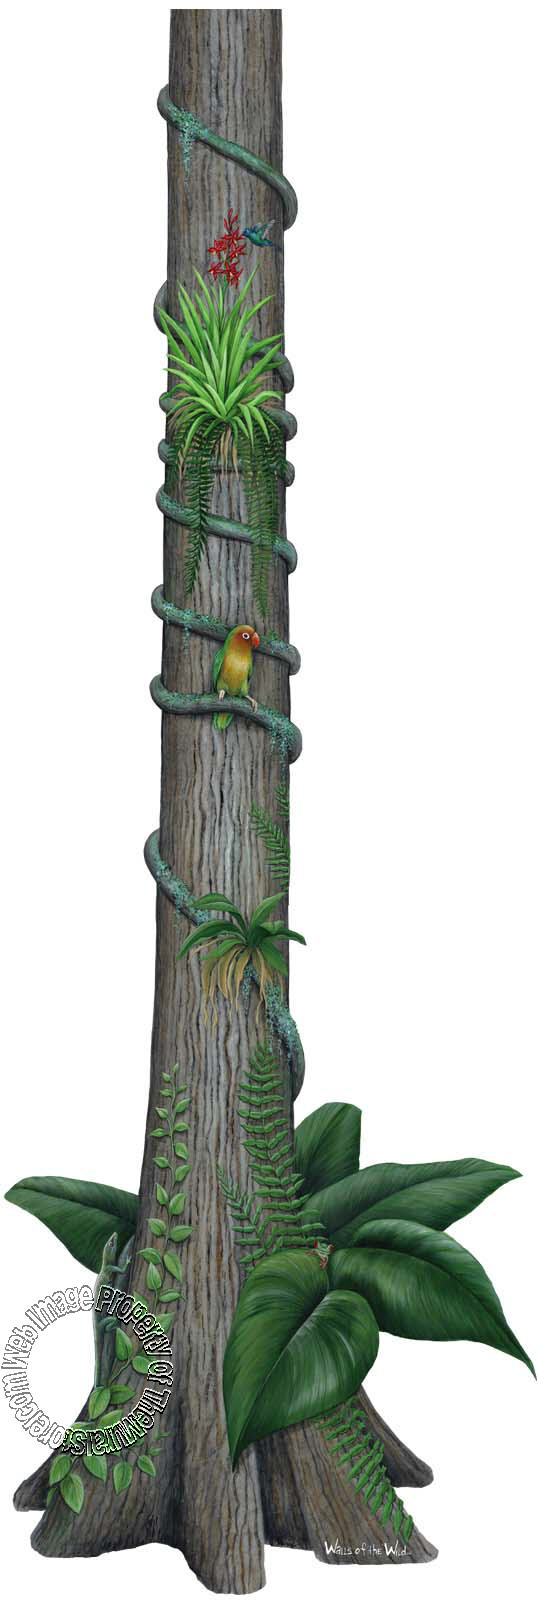 Rainforest Tree Peel & Stick Applique 180109